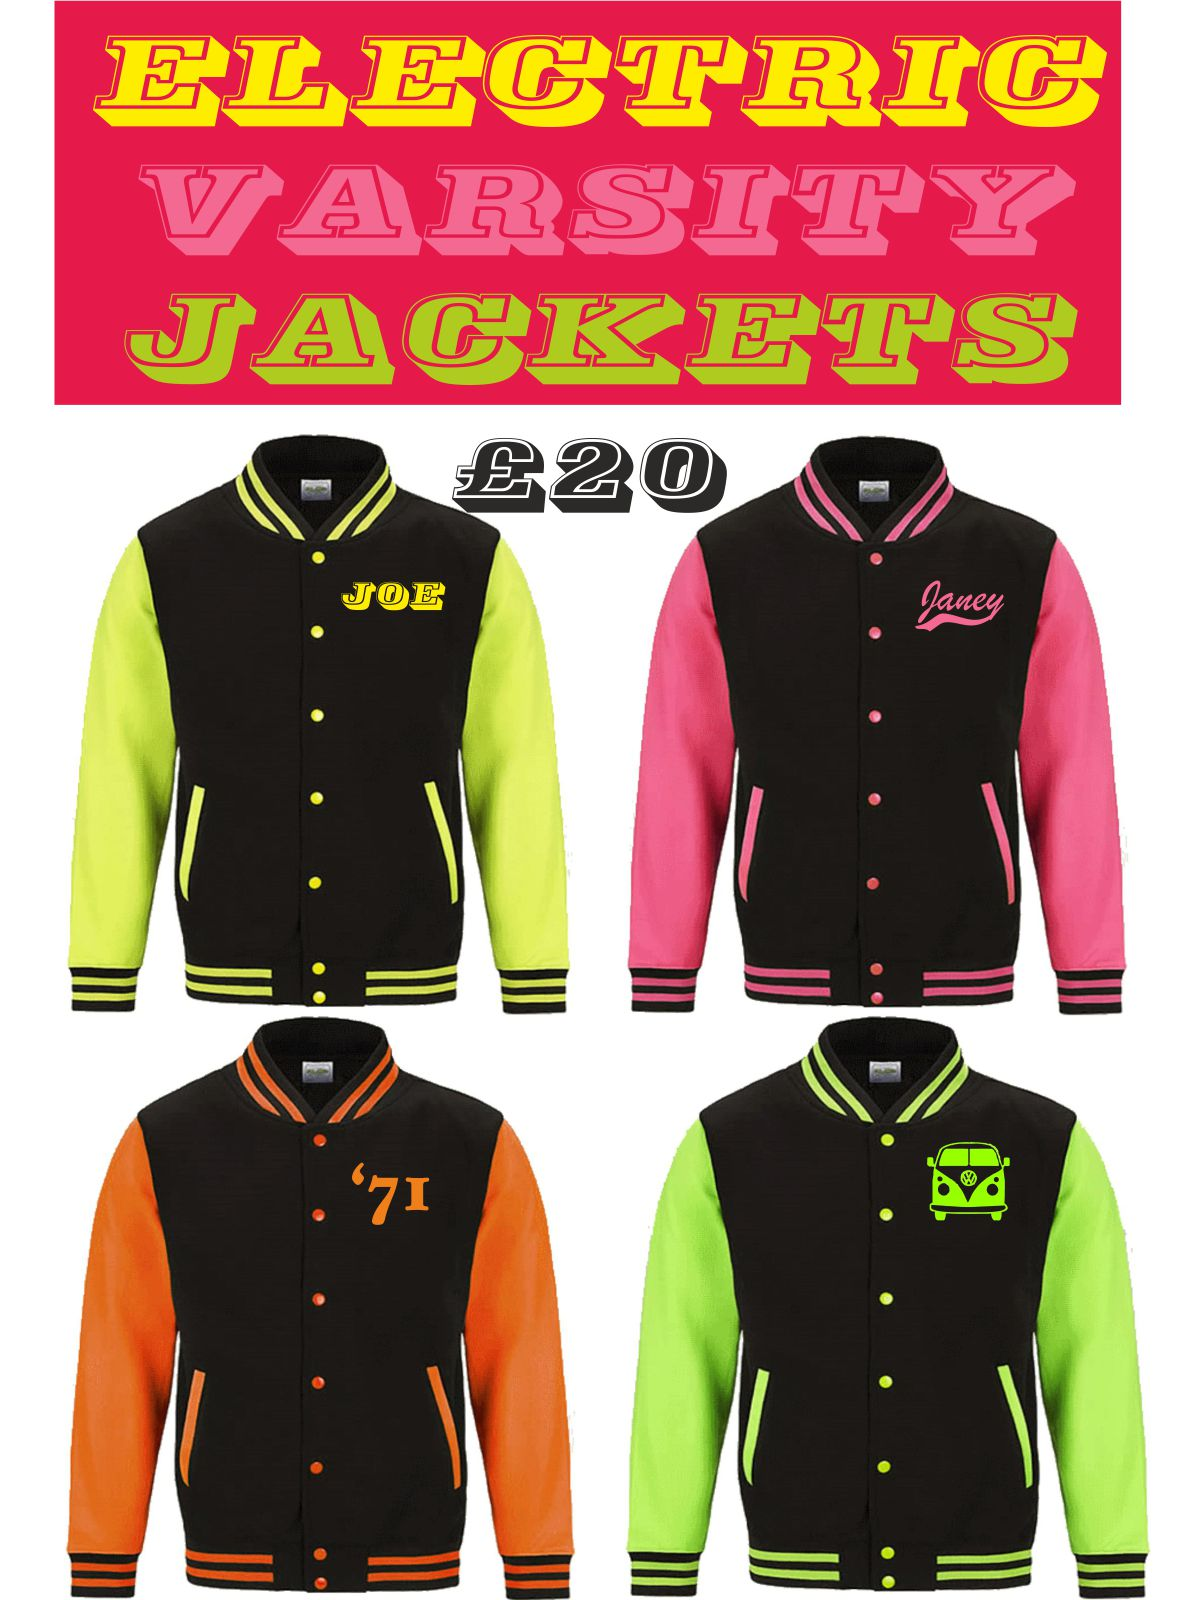 'Electric' Varsity Jacket